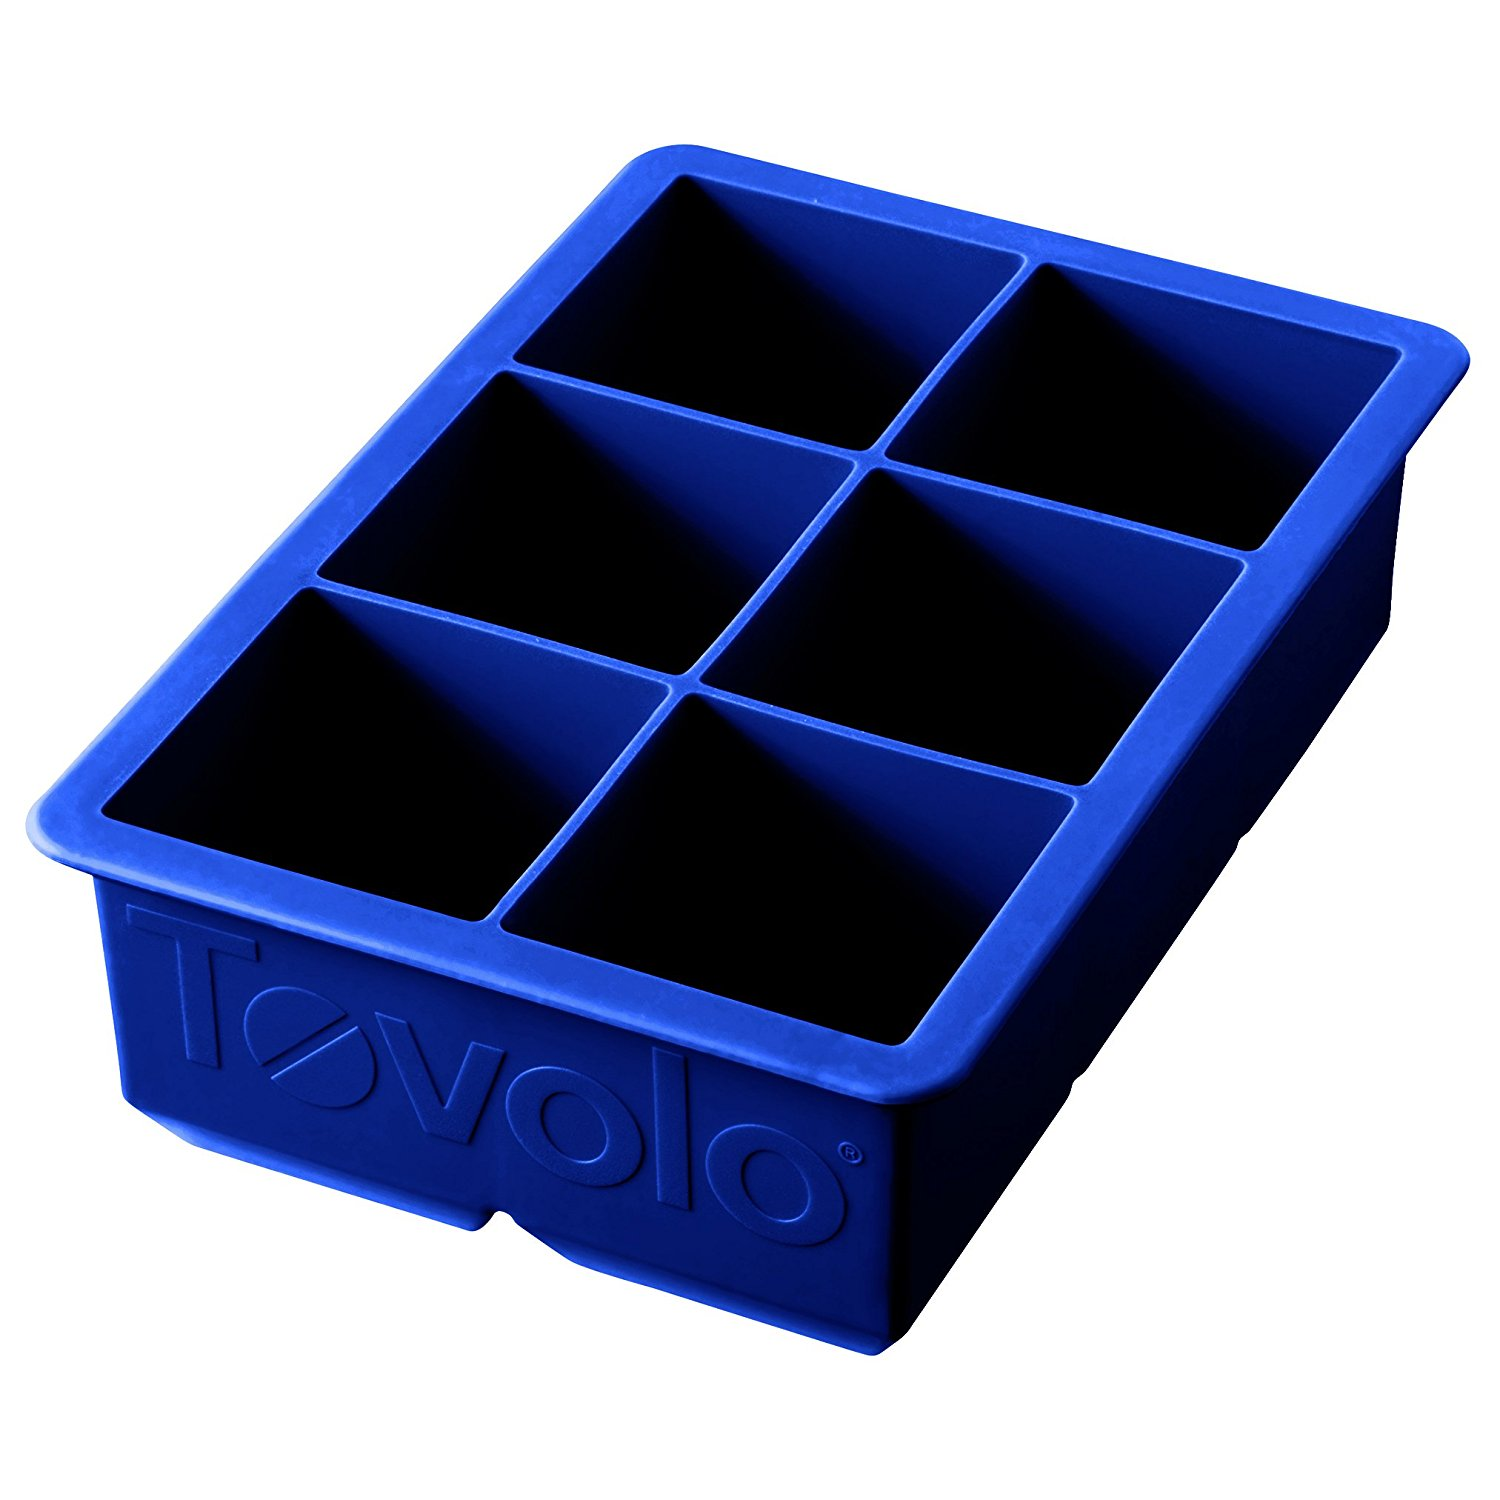 tovolo king cube ice tray stratus blue cocktail. Black Bedroom Furniture Sets. Home Design Ideas